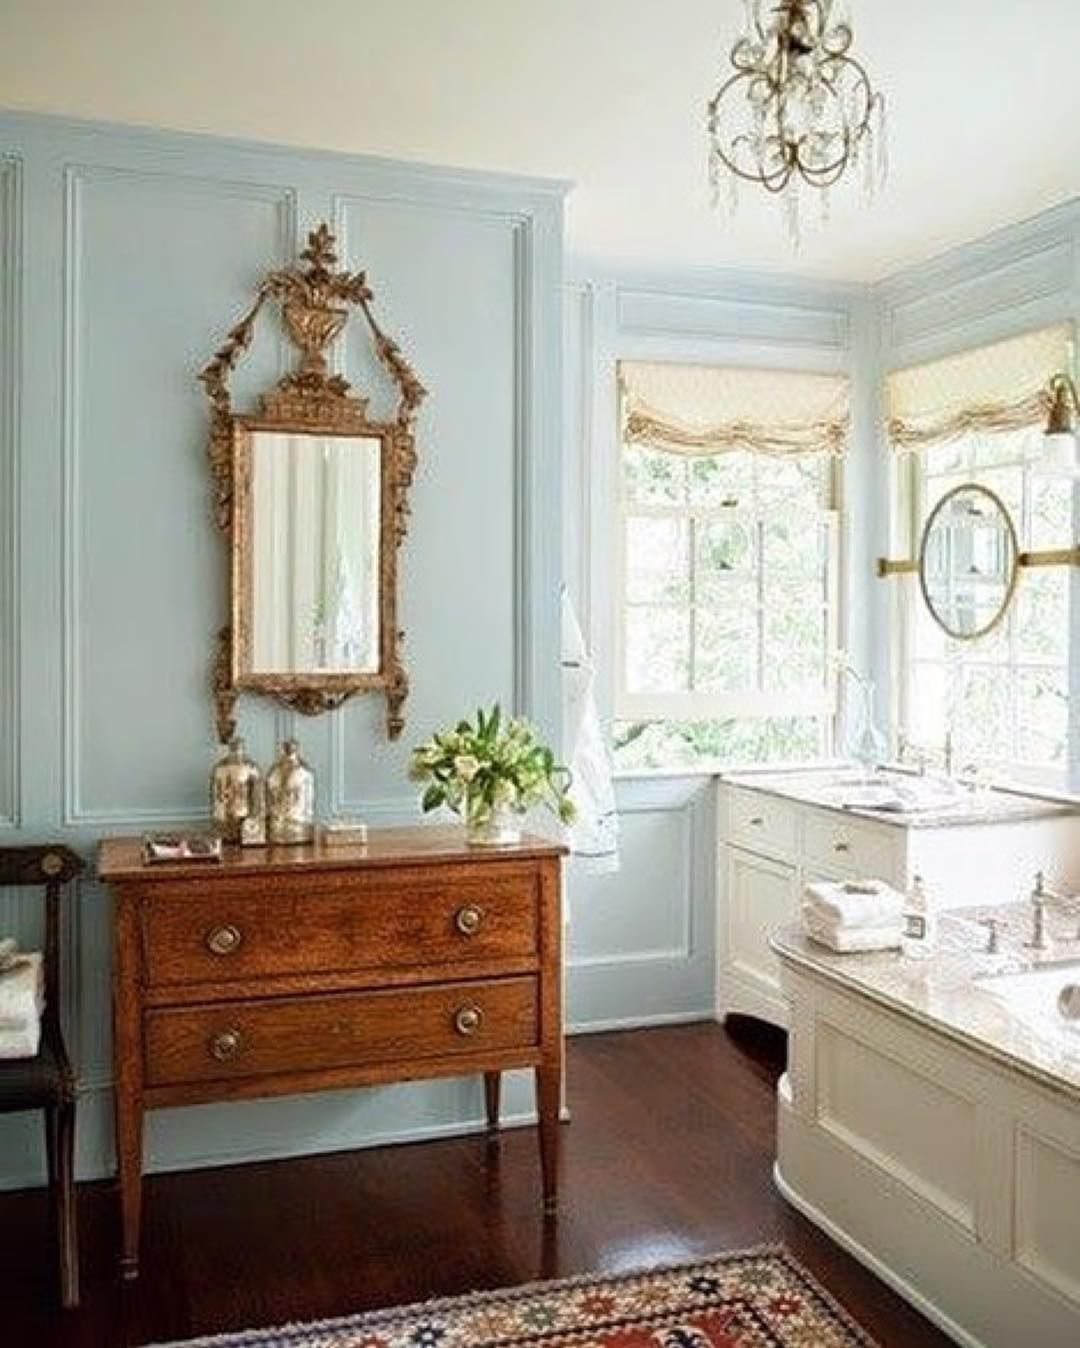 Pin by Leigh Turner on HOME Bathroom design trends